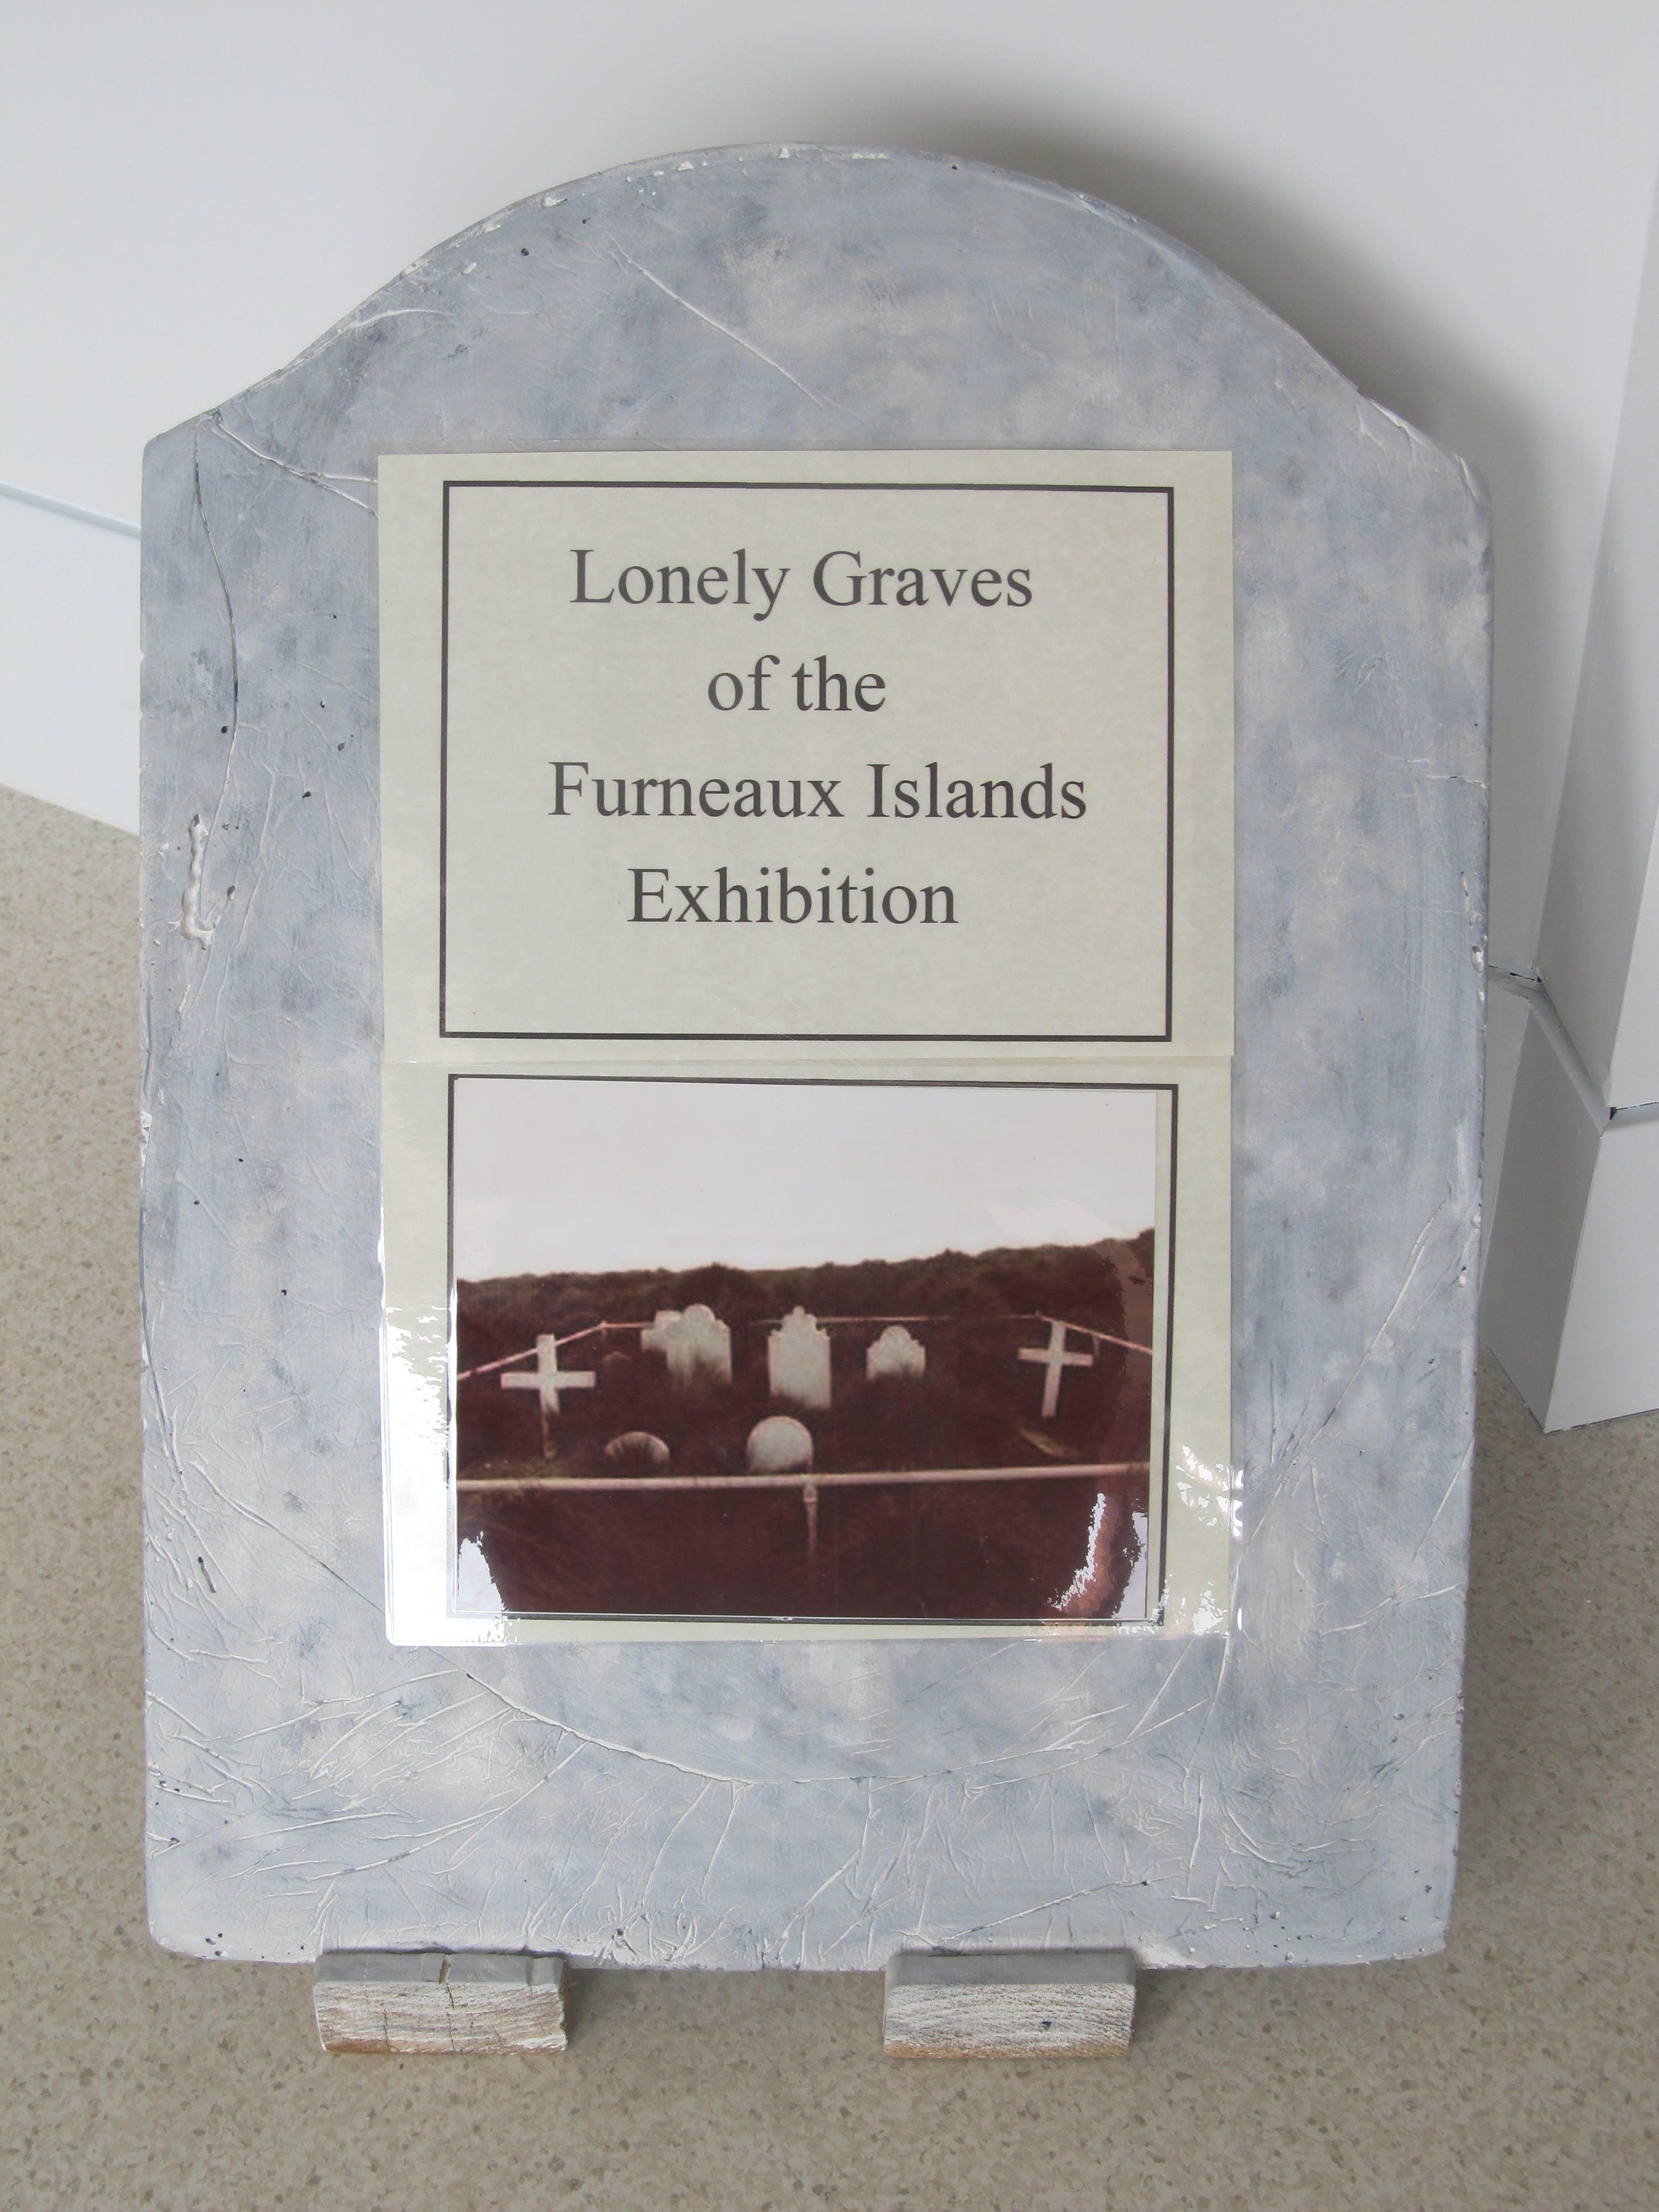 Lonely Graves of the Furneaux Islands Exhibition - Accommodation Gold Coast